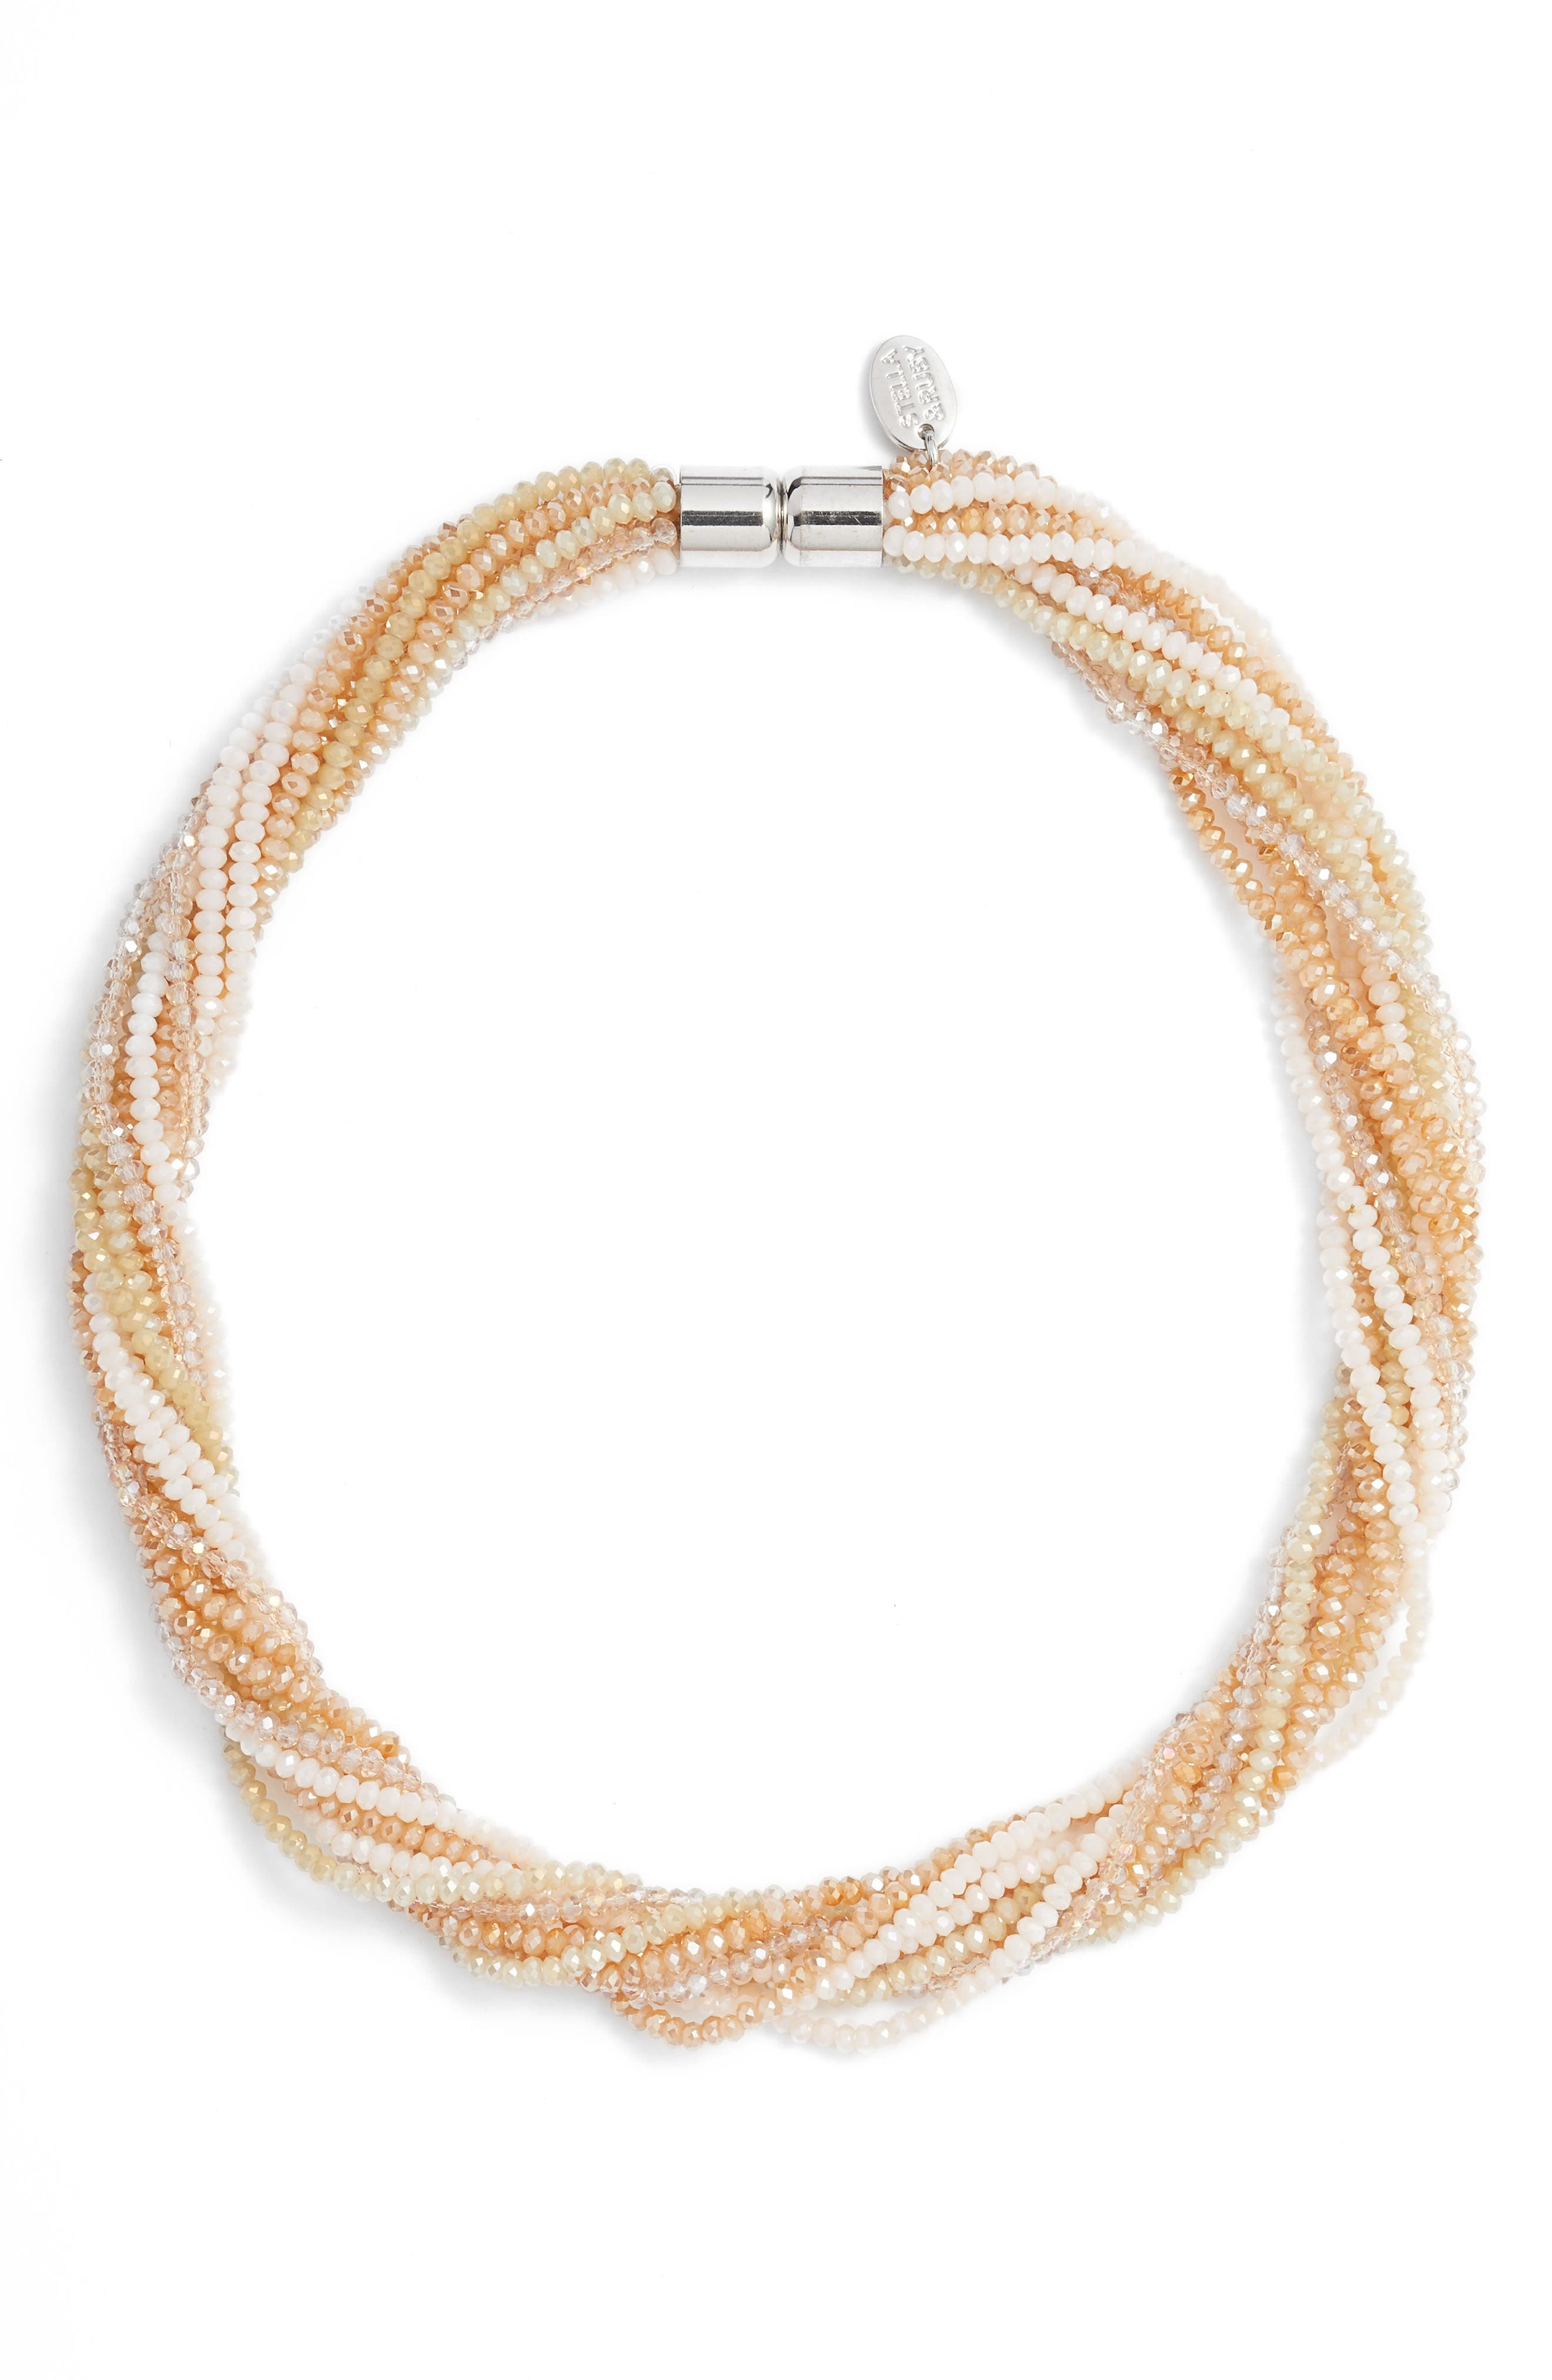 Multi Strand Beaded Necklace,                         Main,                         color, Silver/ Neutral